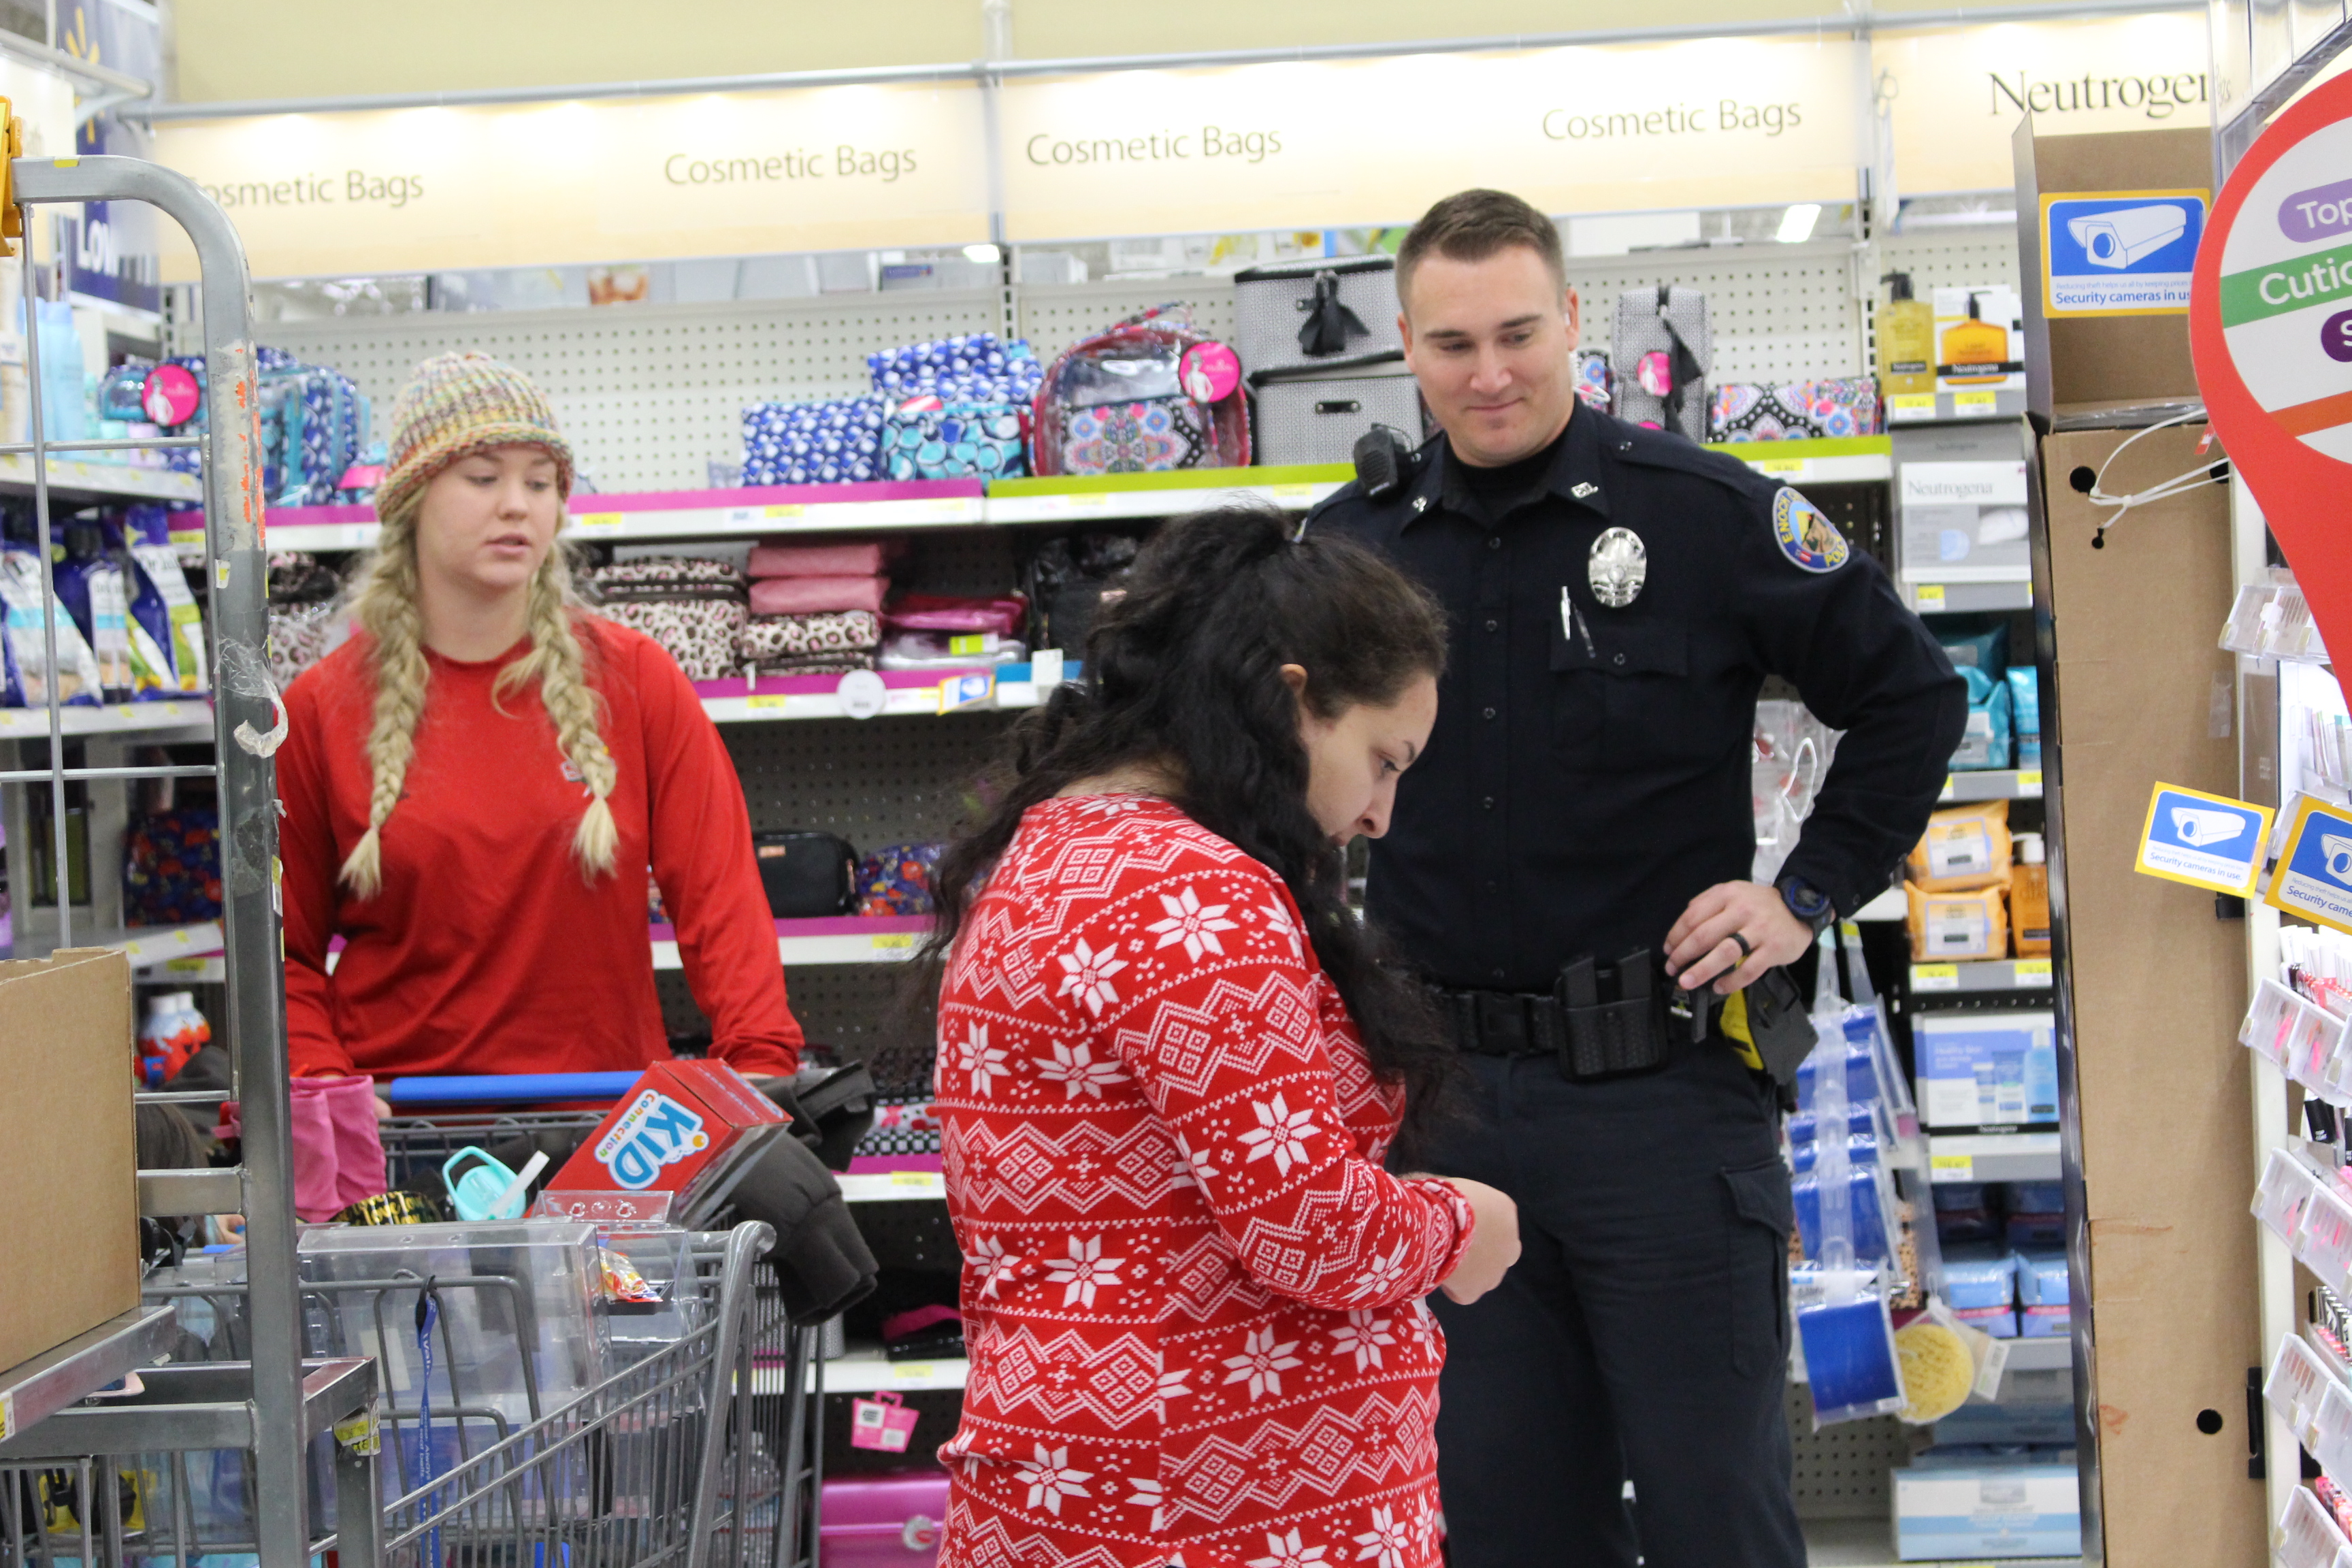 Cedar City Officers have fun watching the kids pick out their gifts during the Shop with a Cop event Saturday. St. George, Utah, Dec. 10, 2016 | Photo by Tracie Sullivan, St. George / Cedar City News